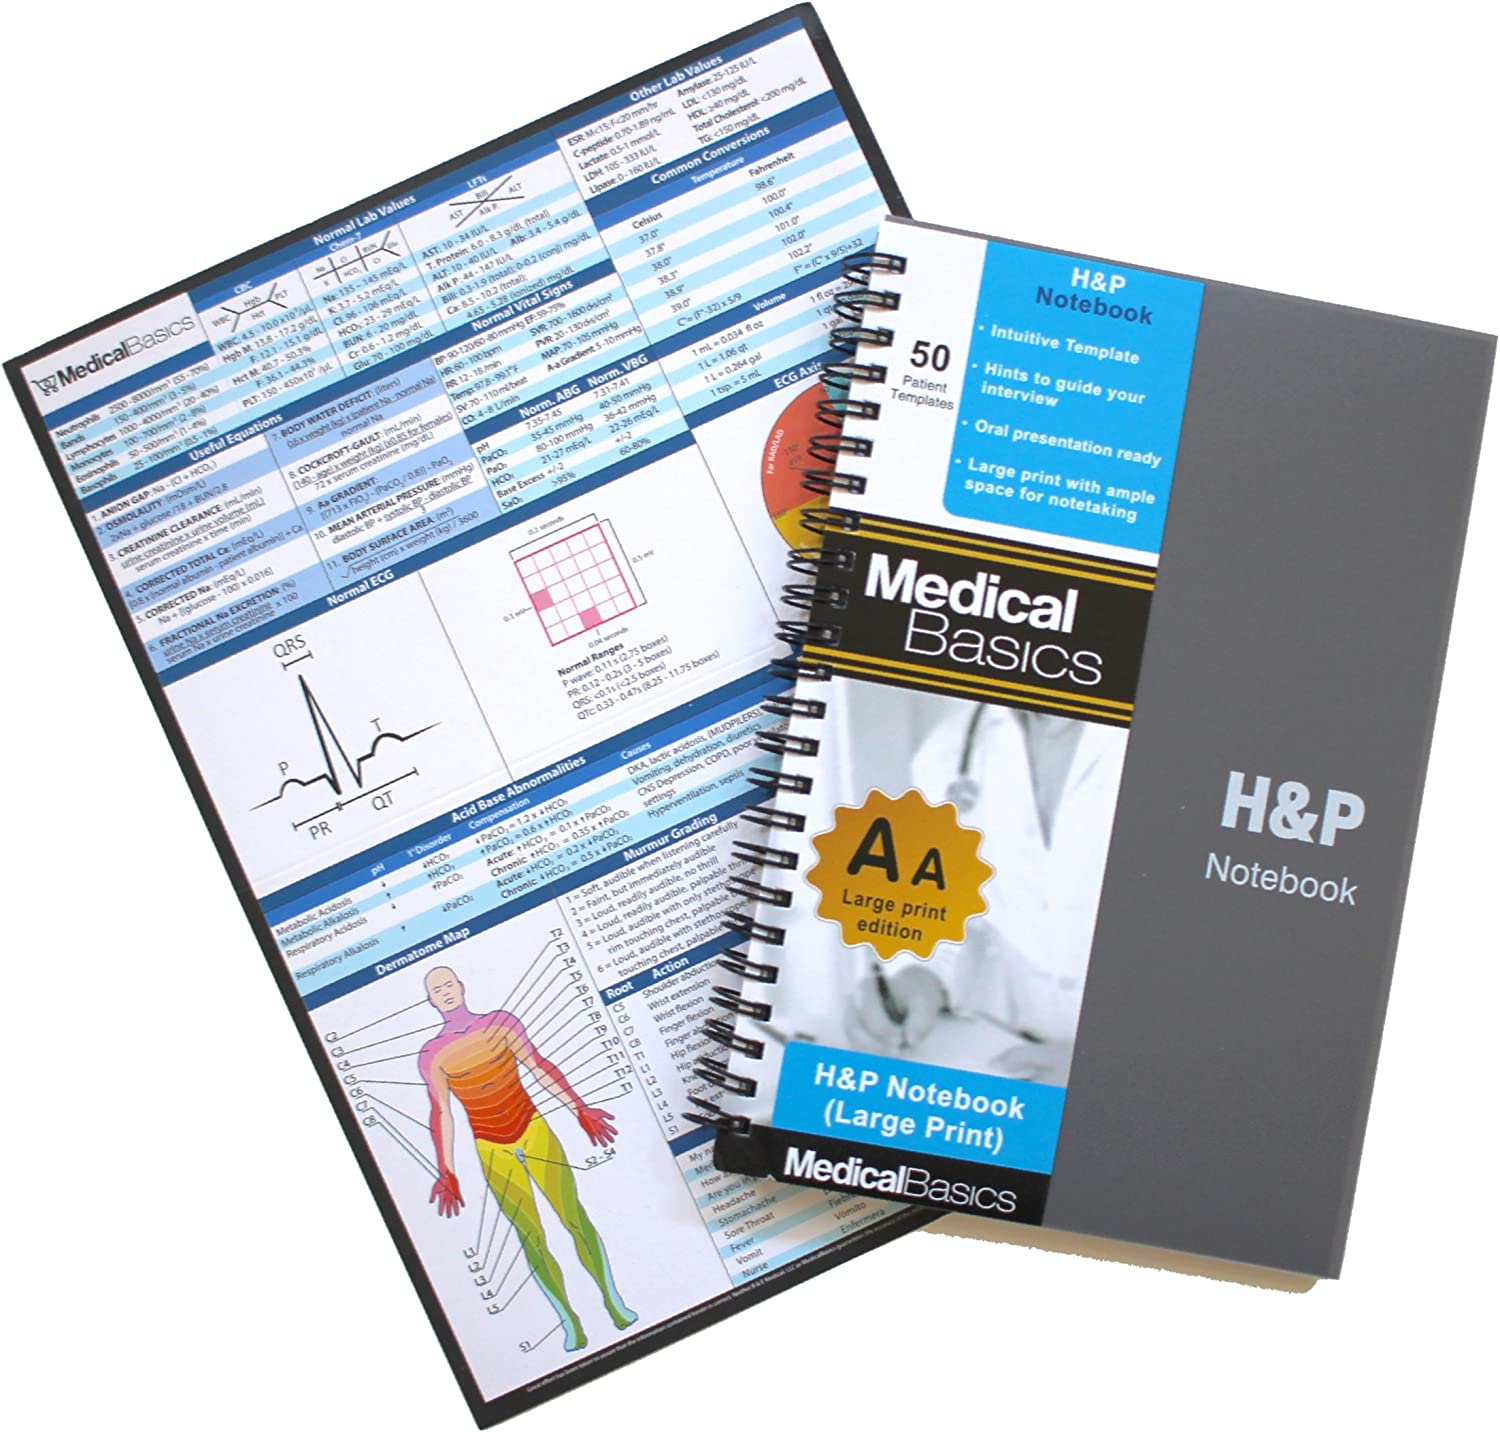 H&P Notebook (Large Print) - Medical History and Physical Notebook, 50 Medical templates with Perforations